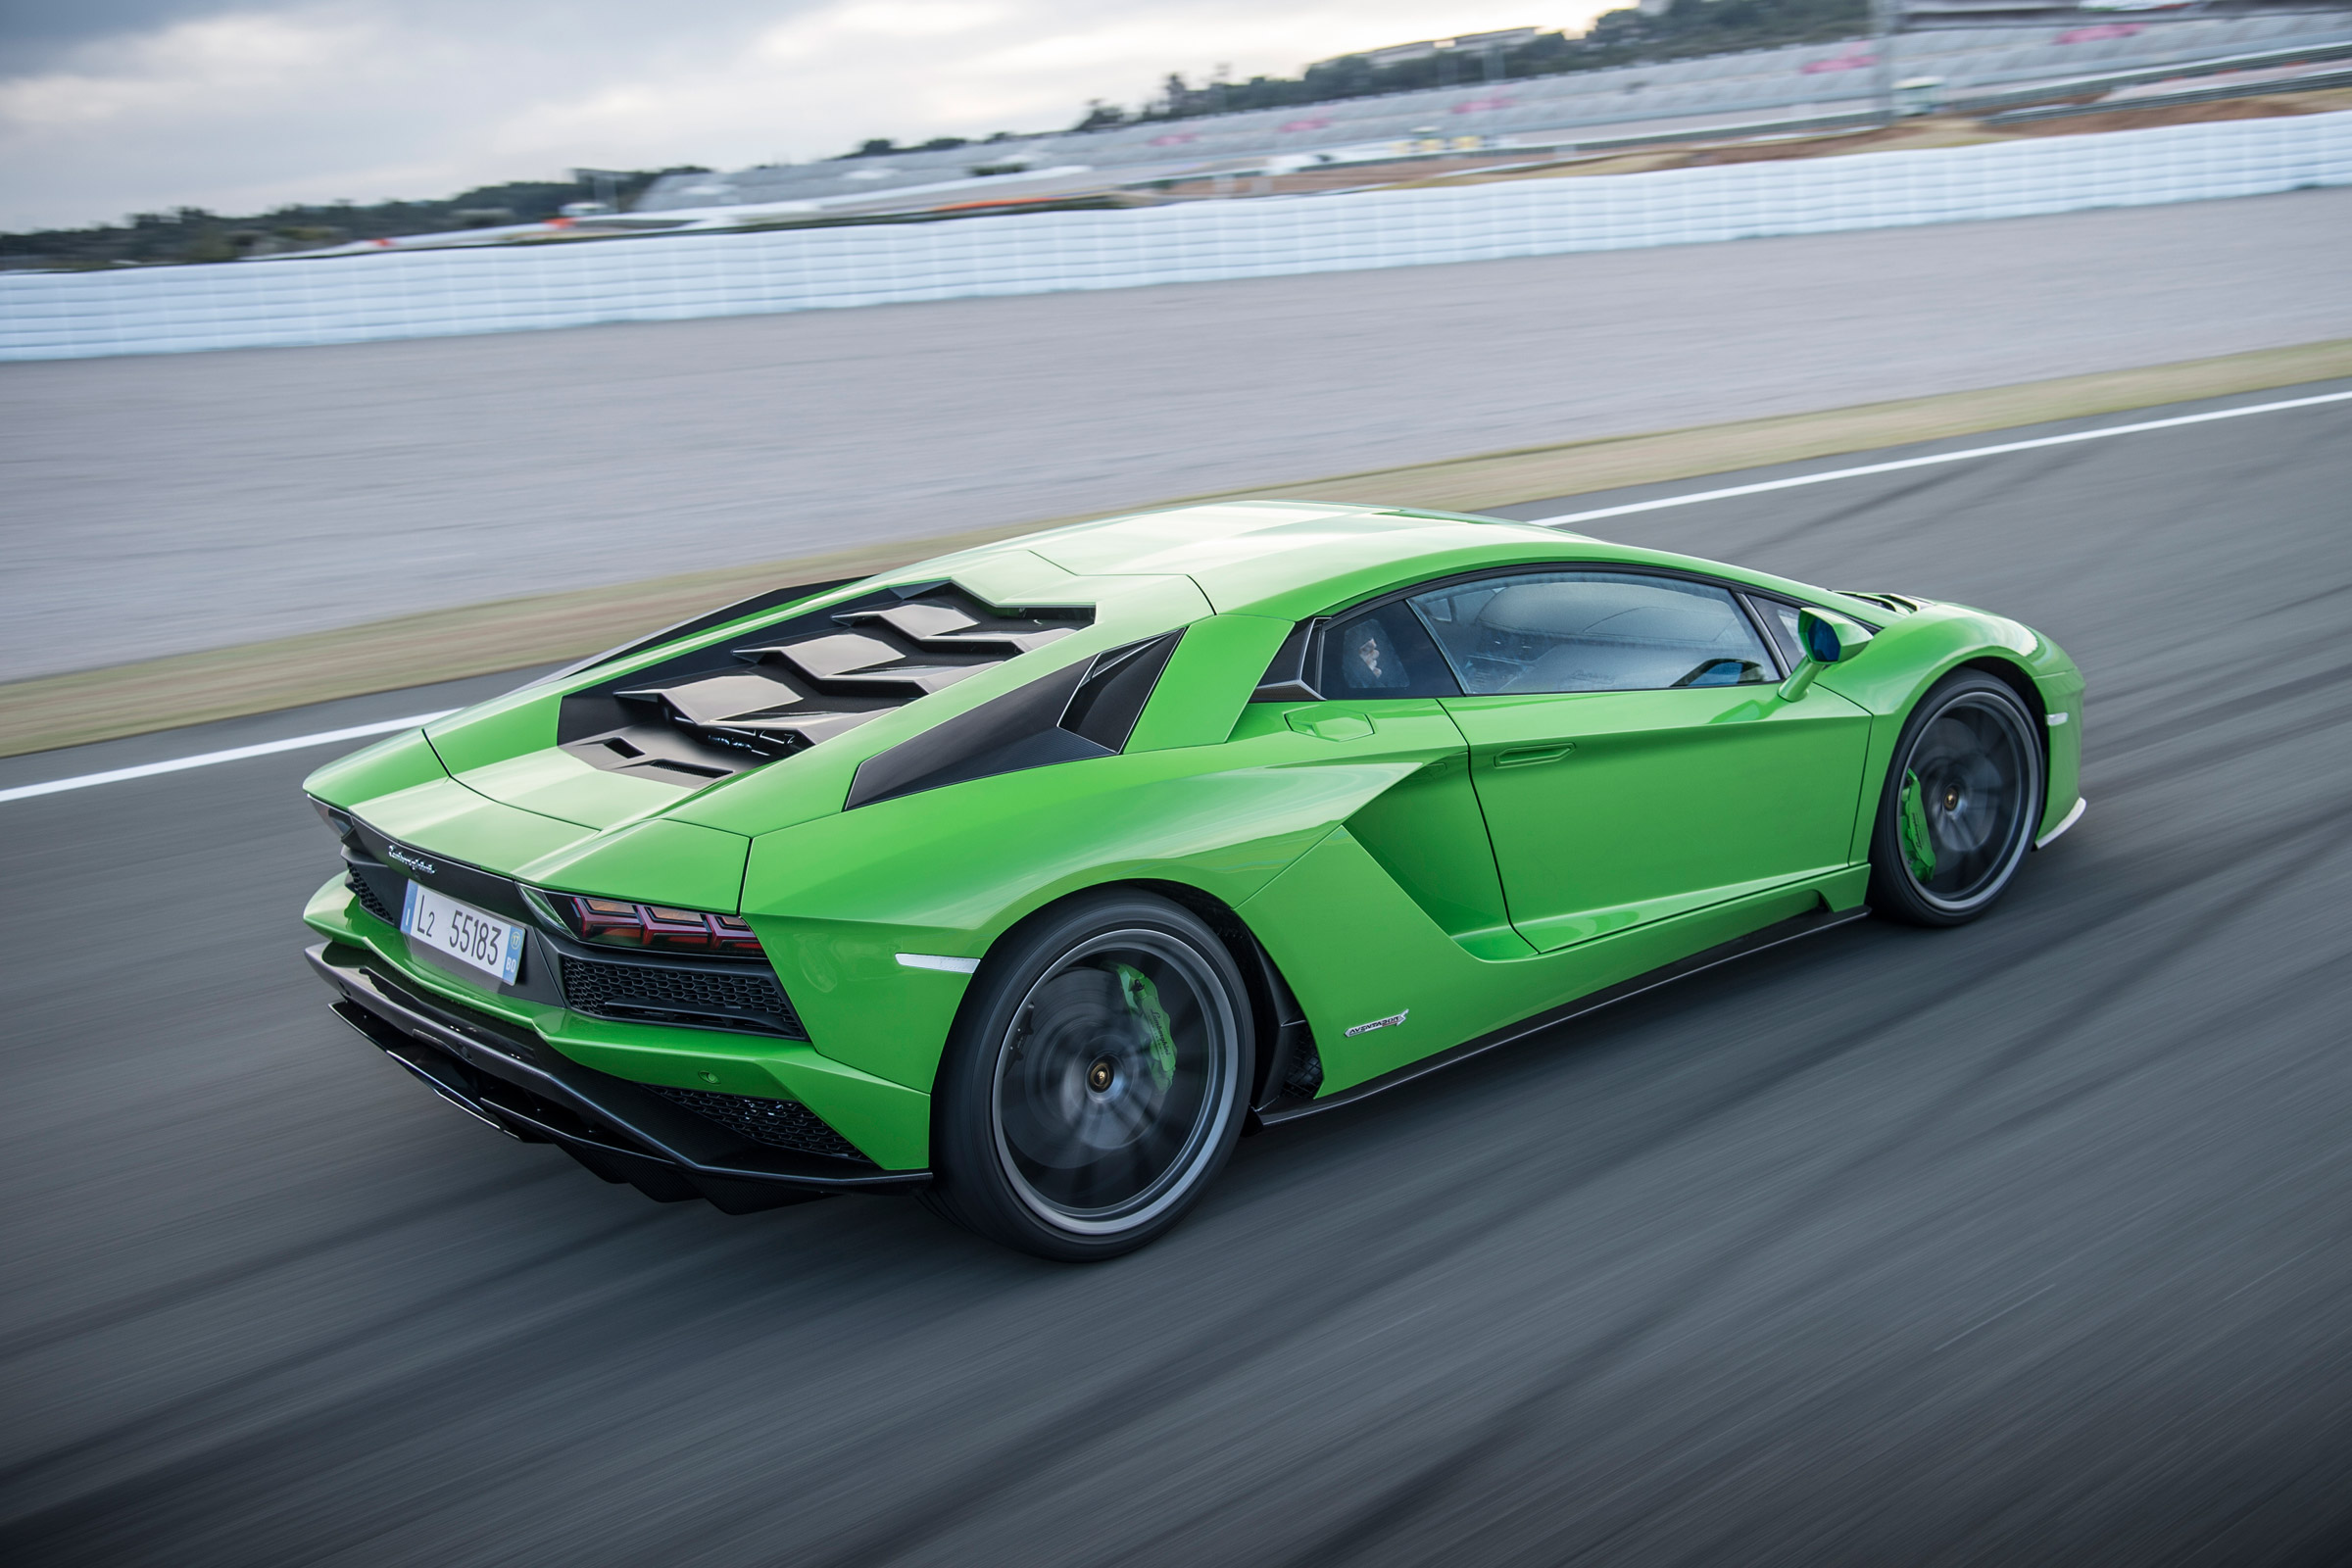 2017 Lamborghini Aventador S Performance Test (Photo 19 of 20)